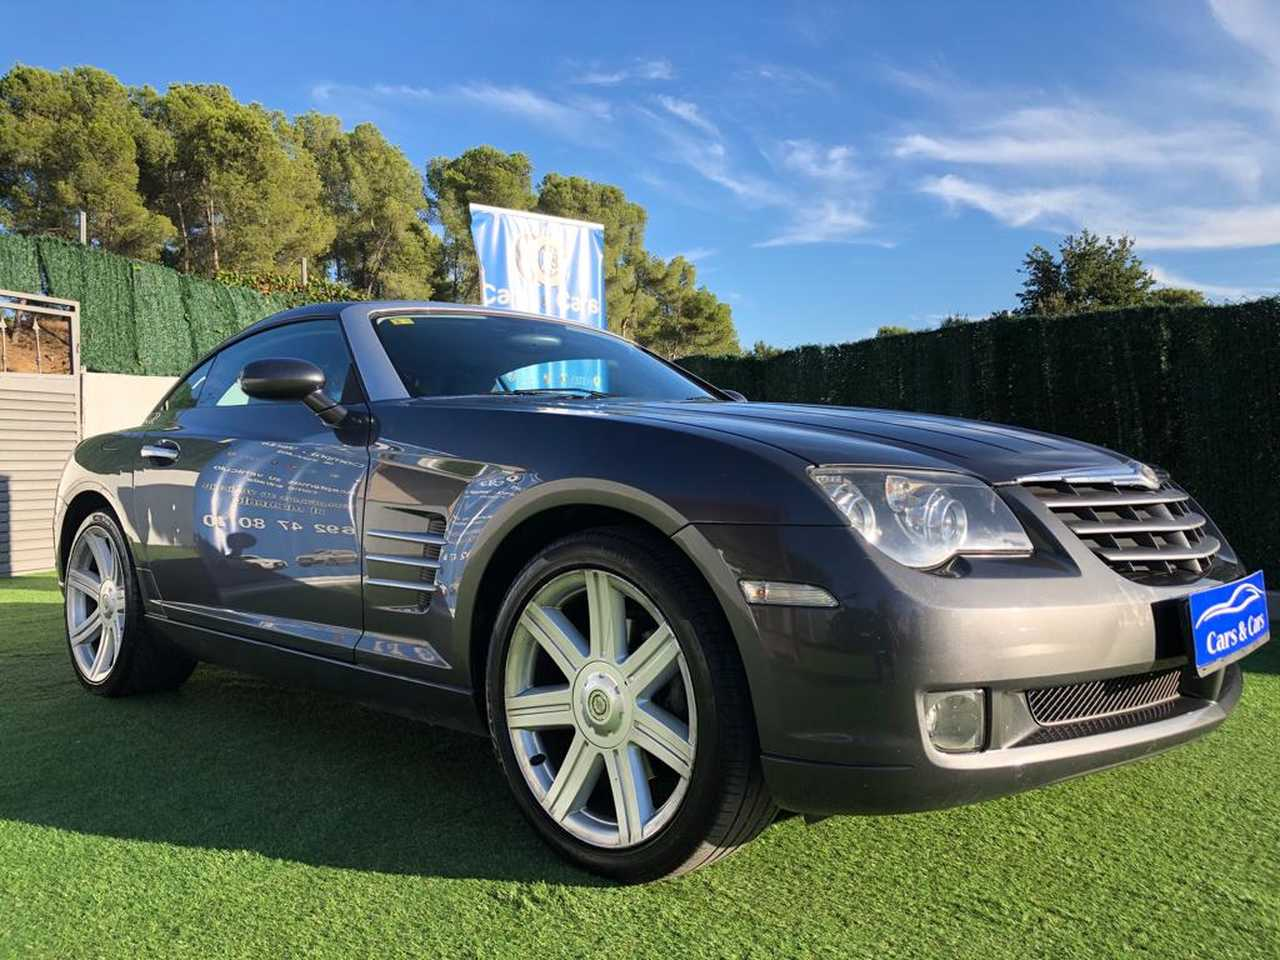 Chrysler Crossfire Coupe    - Foto 1